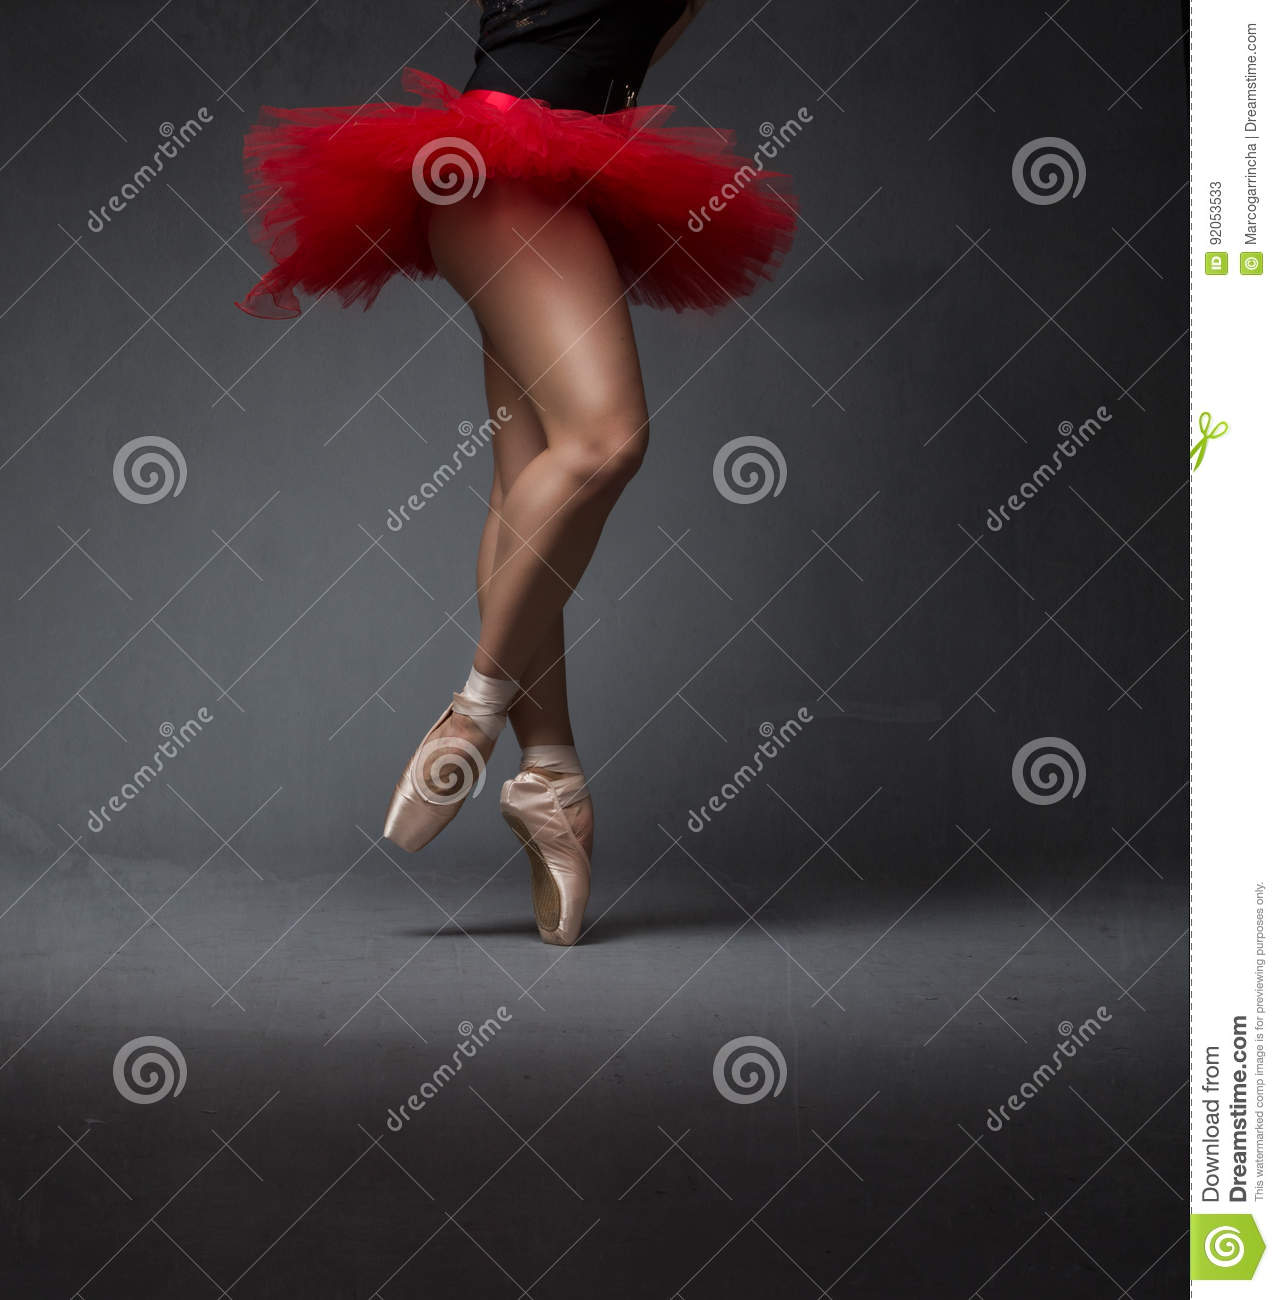 Ballerina movement on point